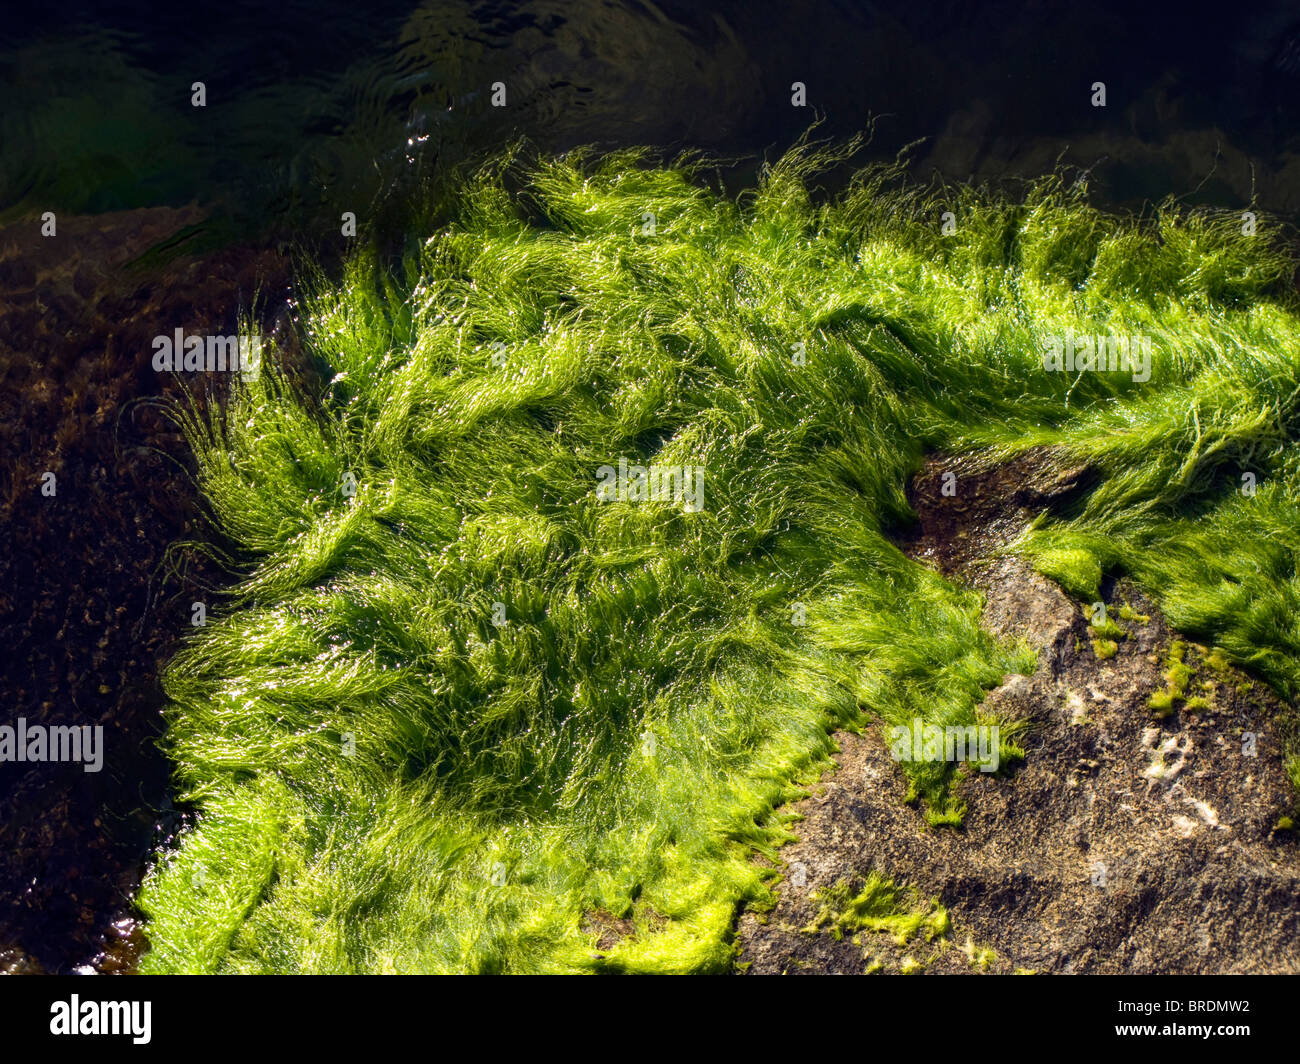 Seagrass on a cliff in the Baltic sea - Stock Image